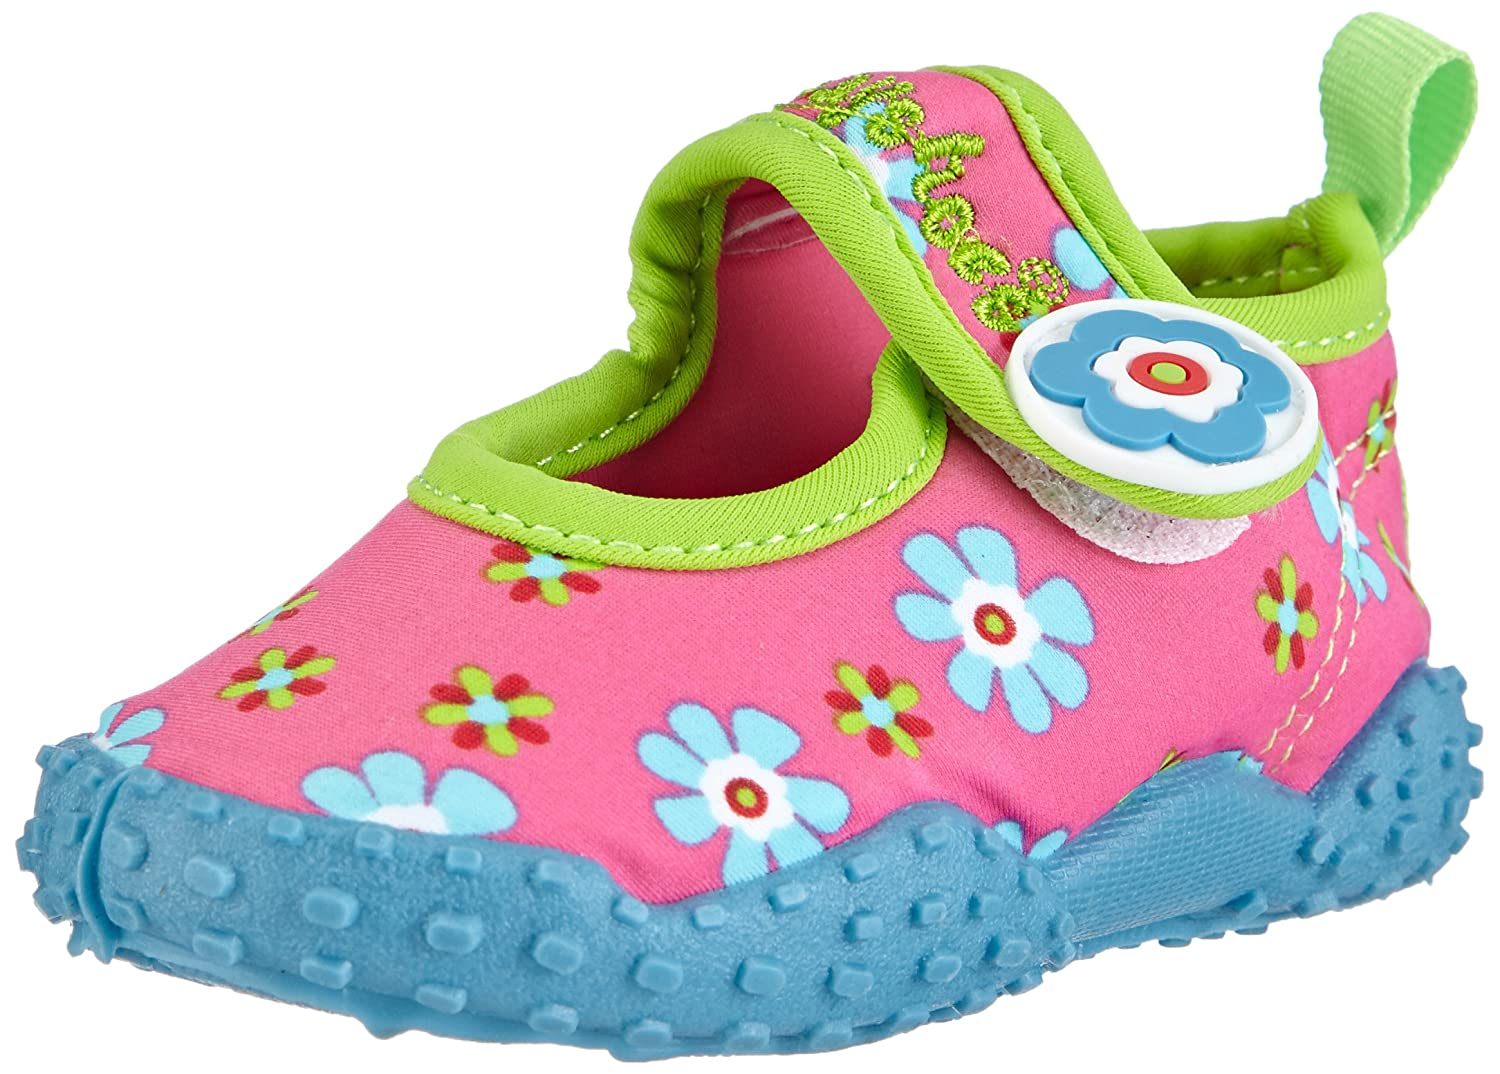 Playshoes Gmbh UV Protection Aqua Strawberries, Piscine et Plage Mixte Enfant